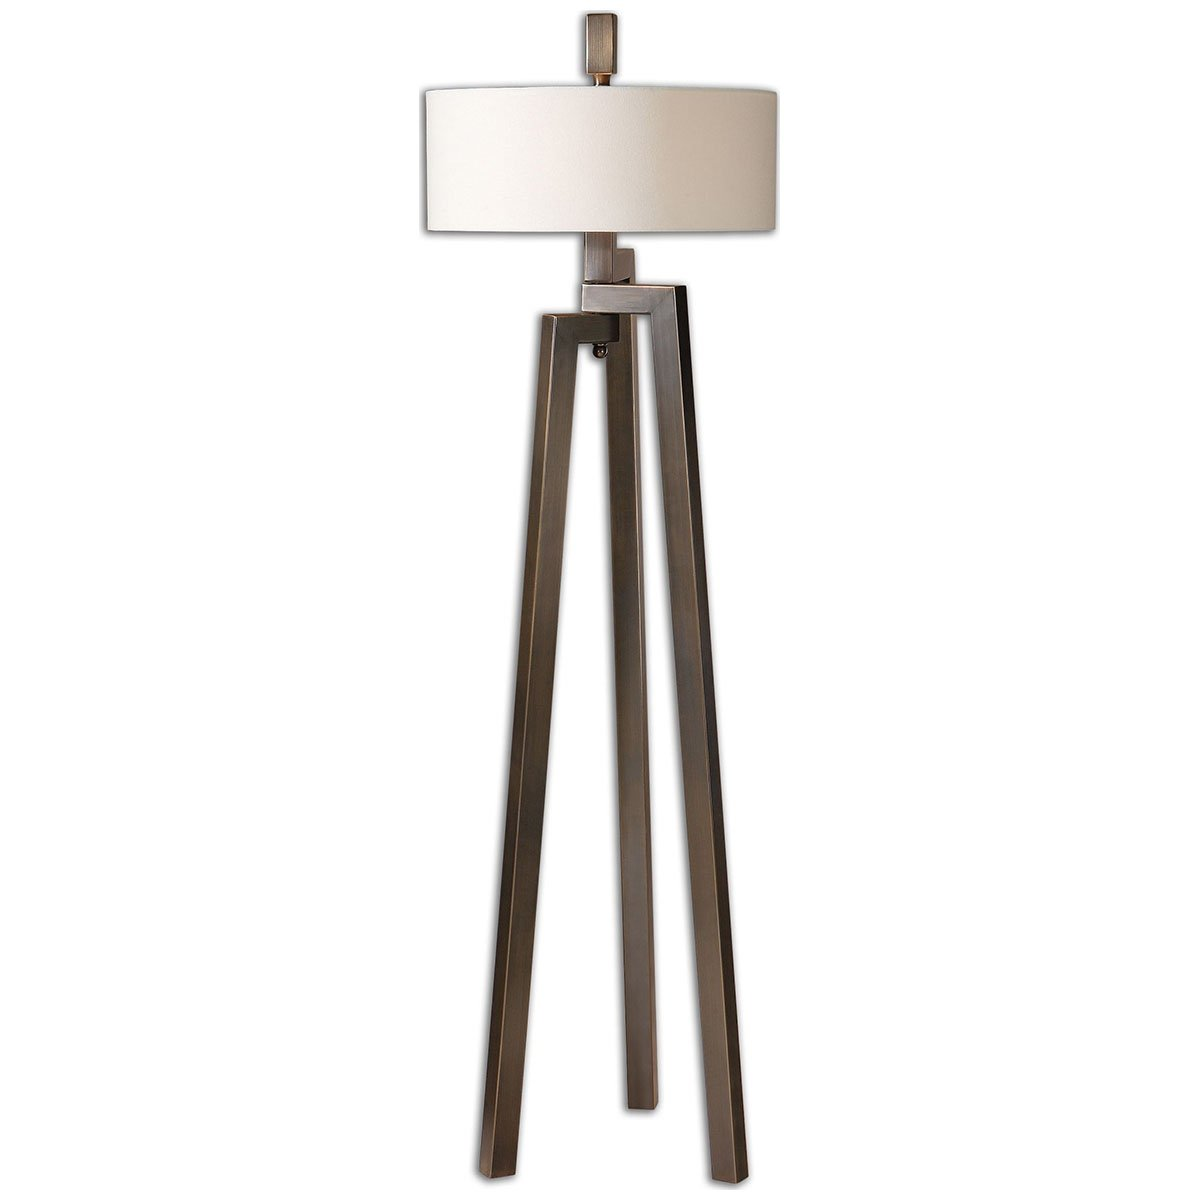 Amazon.com: Uttermost 28253-1 Mondovi Modern Floor Lamp: Home & Kitchen - Amazon.com: Uttermost 28253-1 Mondovi Modern Floor Lamp: Home